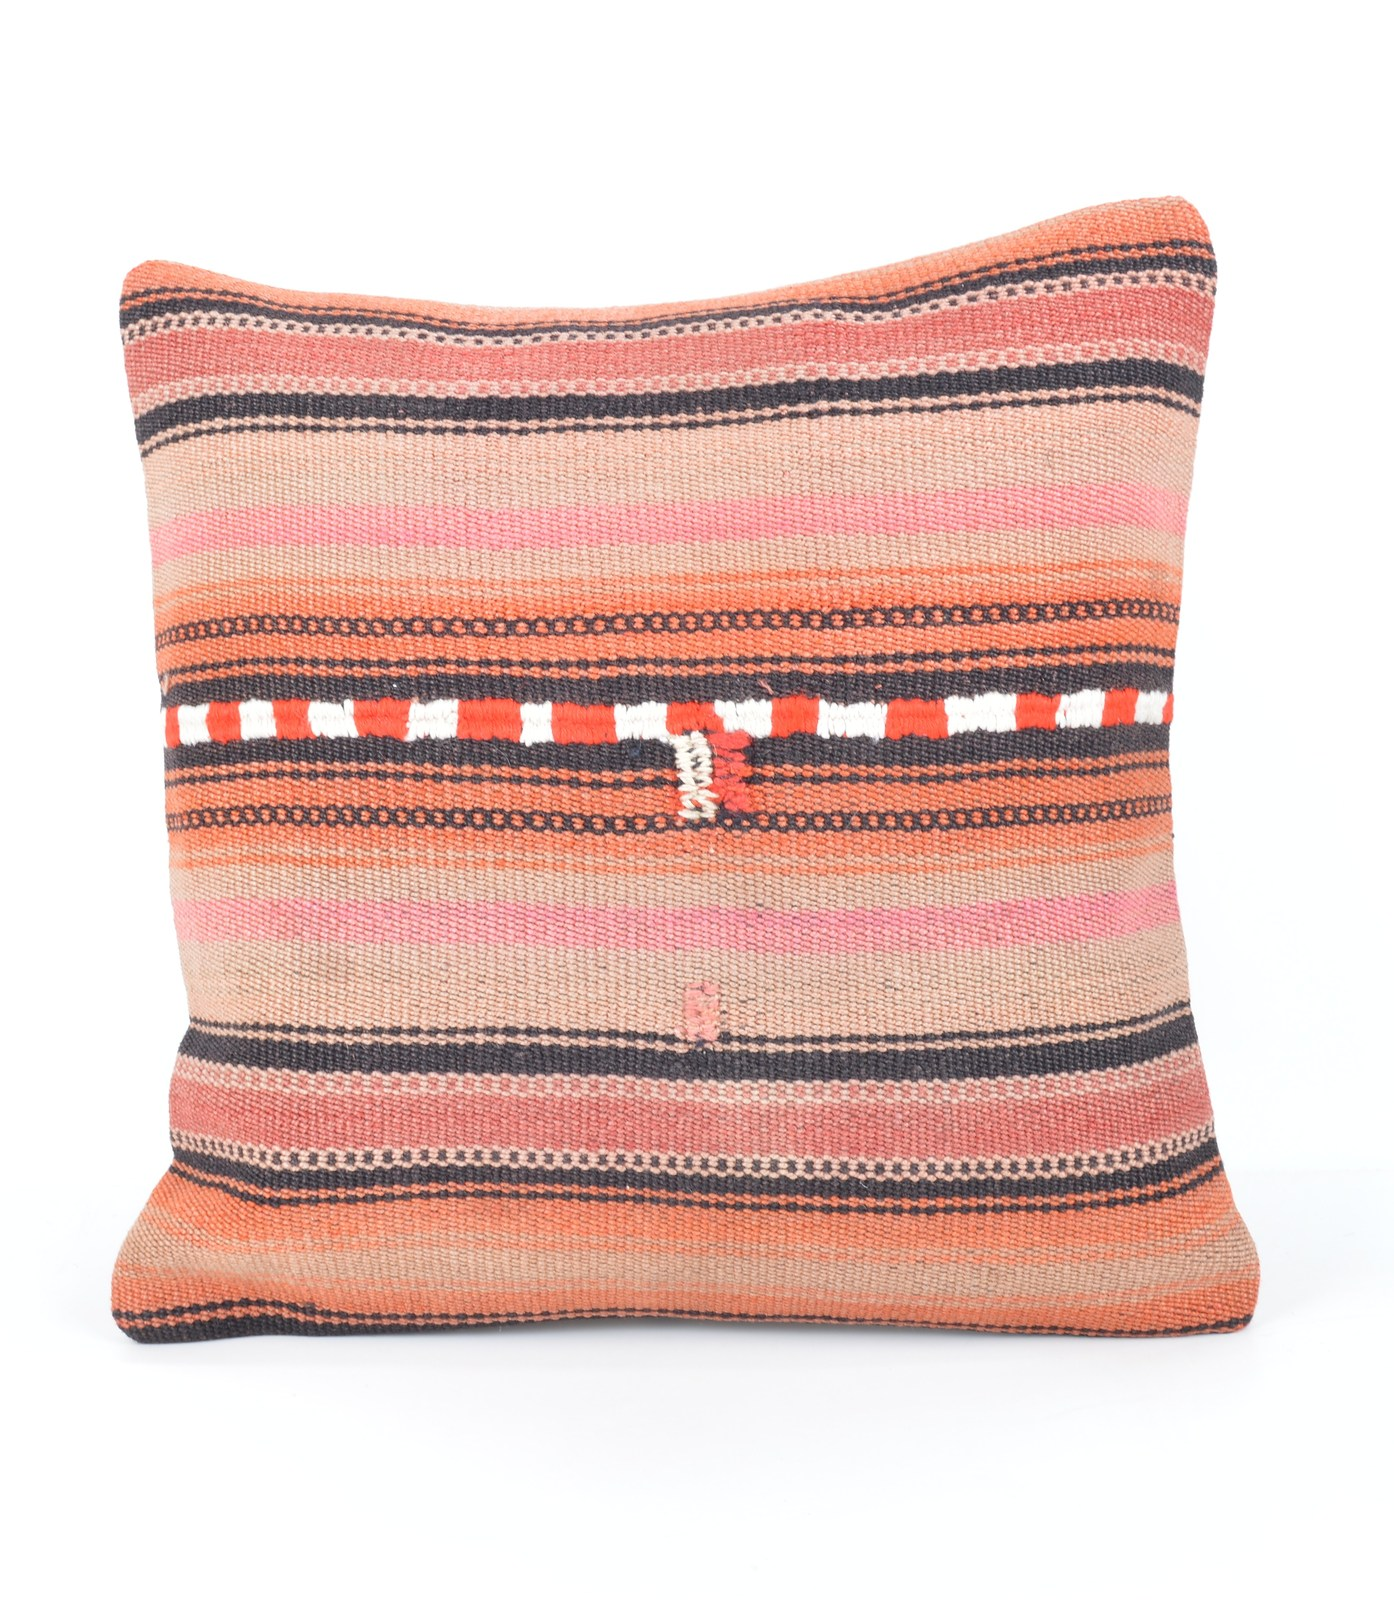 Throw Pillows King Size Bed : sale pillow,kilim rug,kilim,throw pillow kilim,home decor pillow 16x16 pillow - Pillows